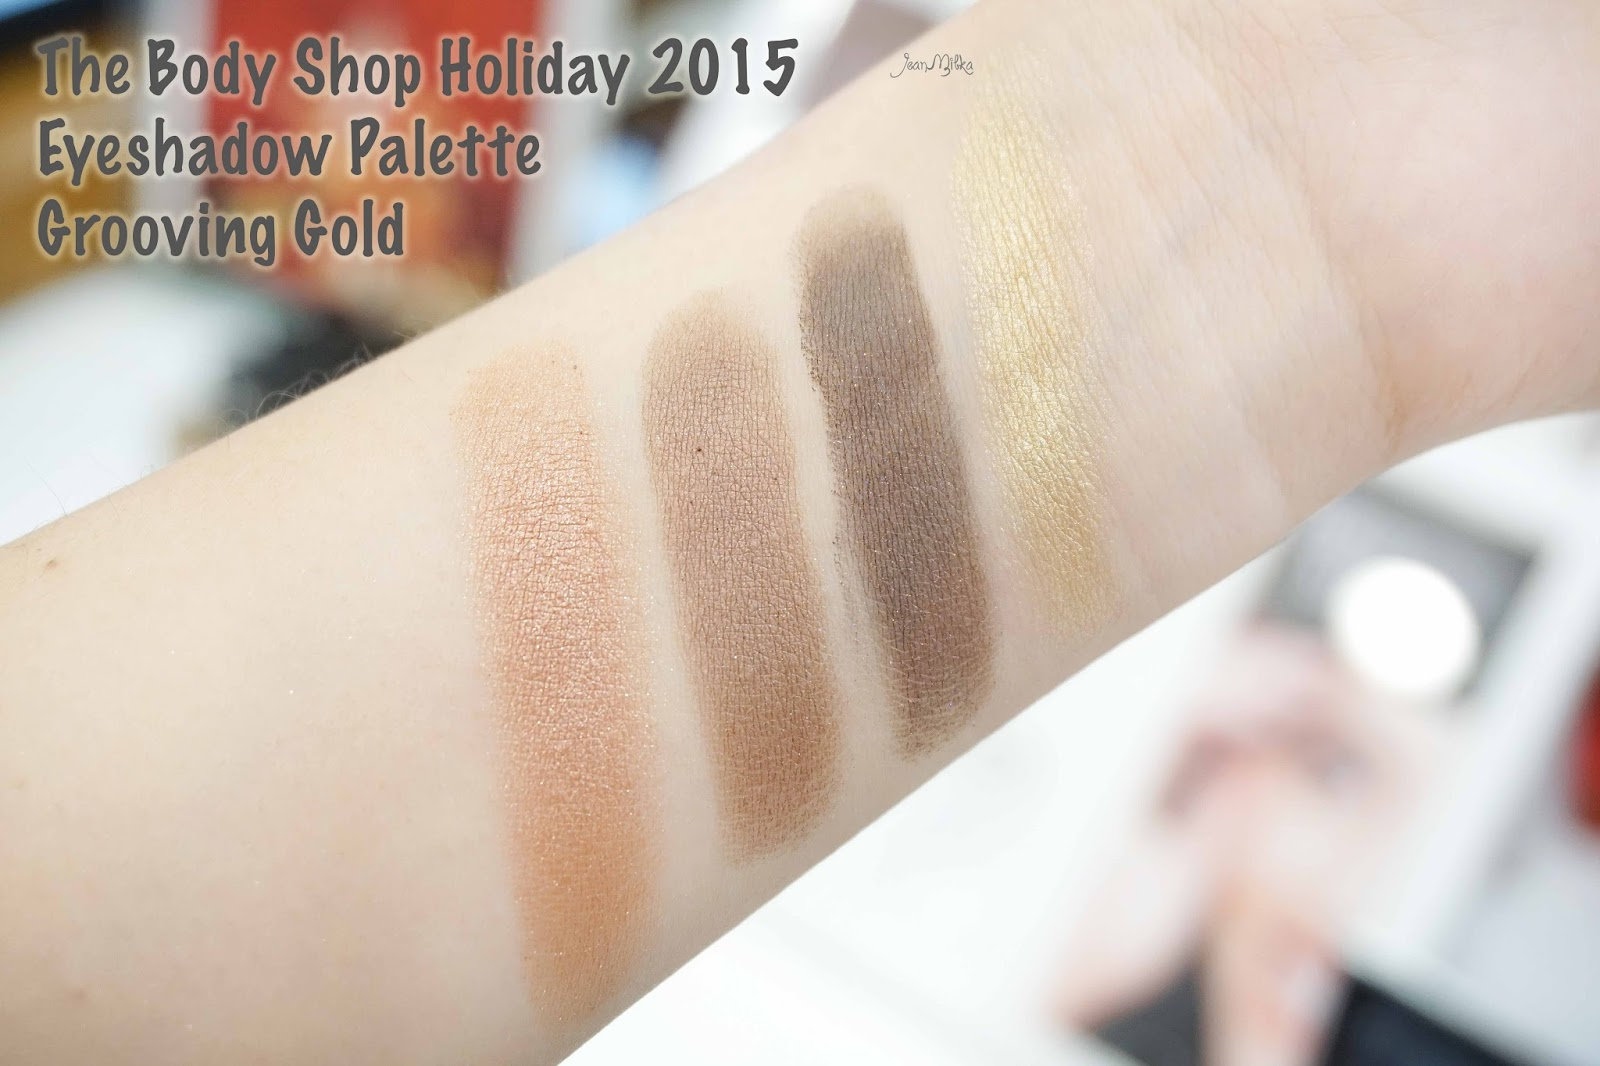 the body shop, body shop, christmas, christmas gift, gift, holiday, gifts. exclusive preview, swatch, eyeshadow, eyeshadow palette, grooving gold,